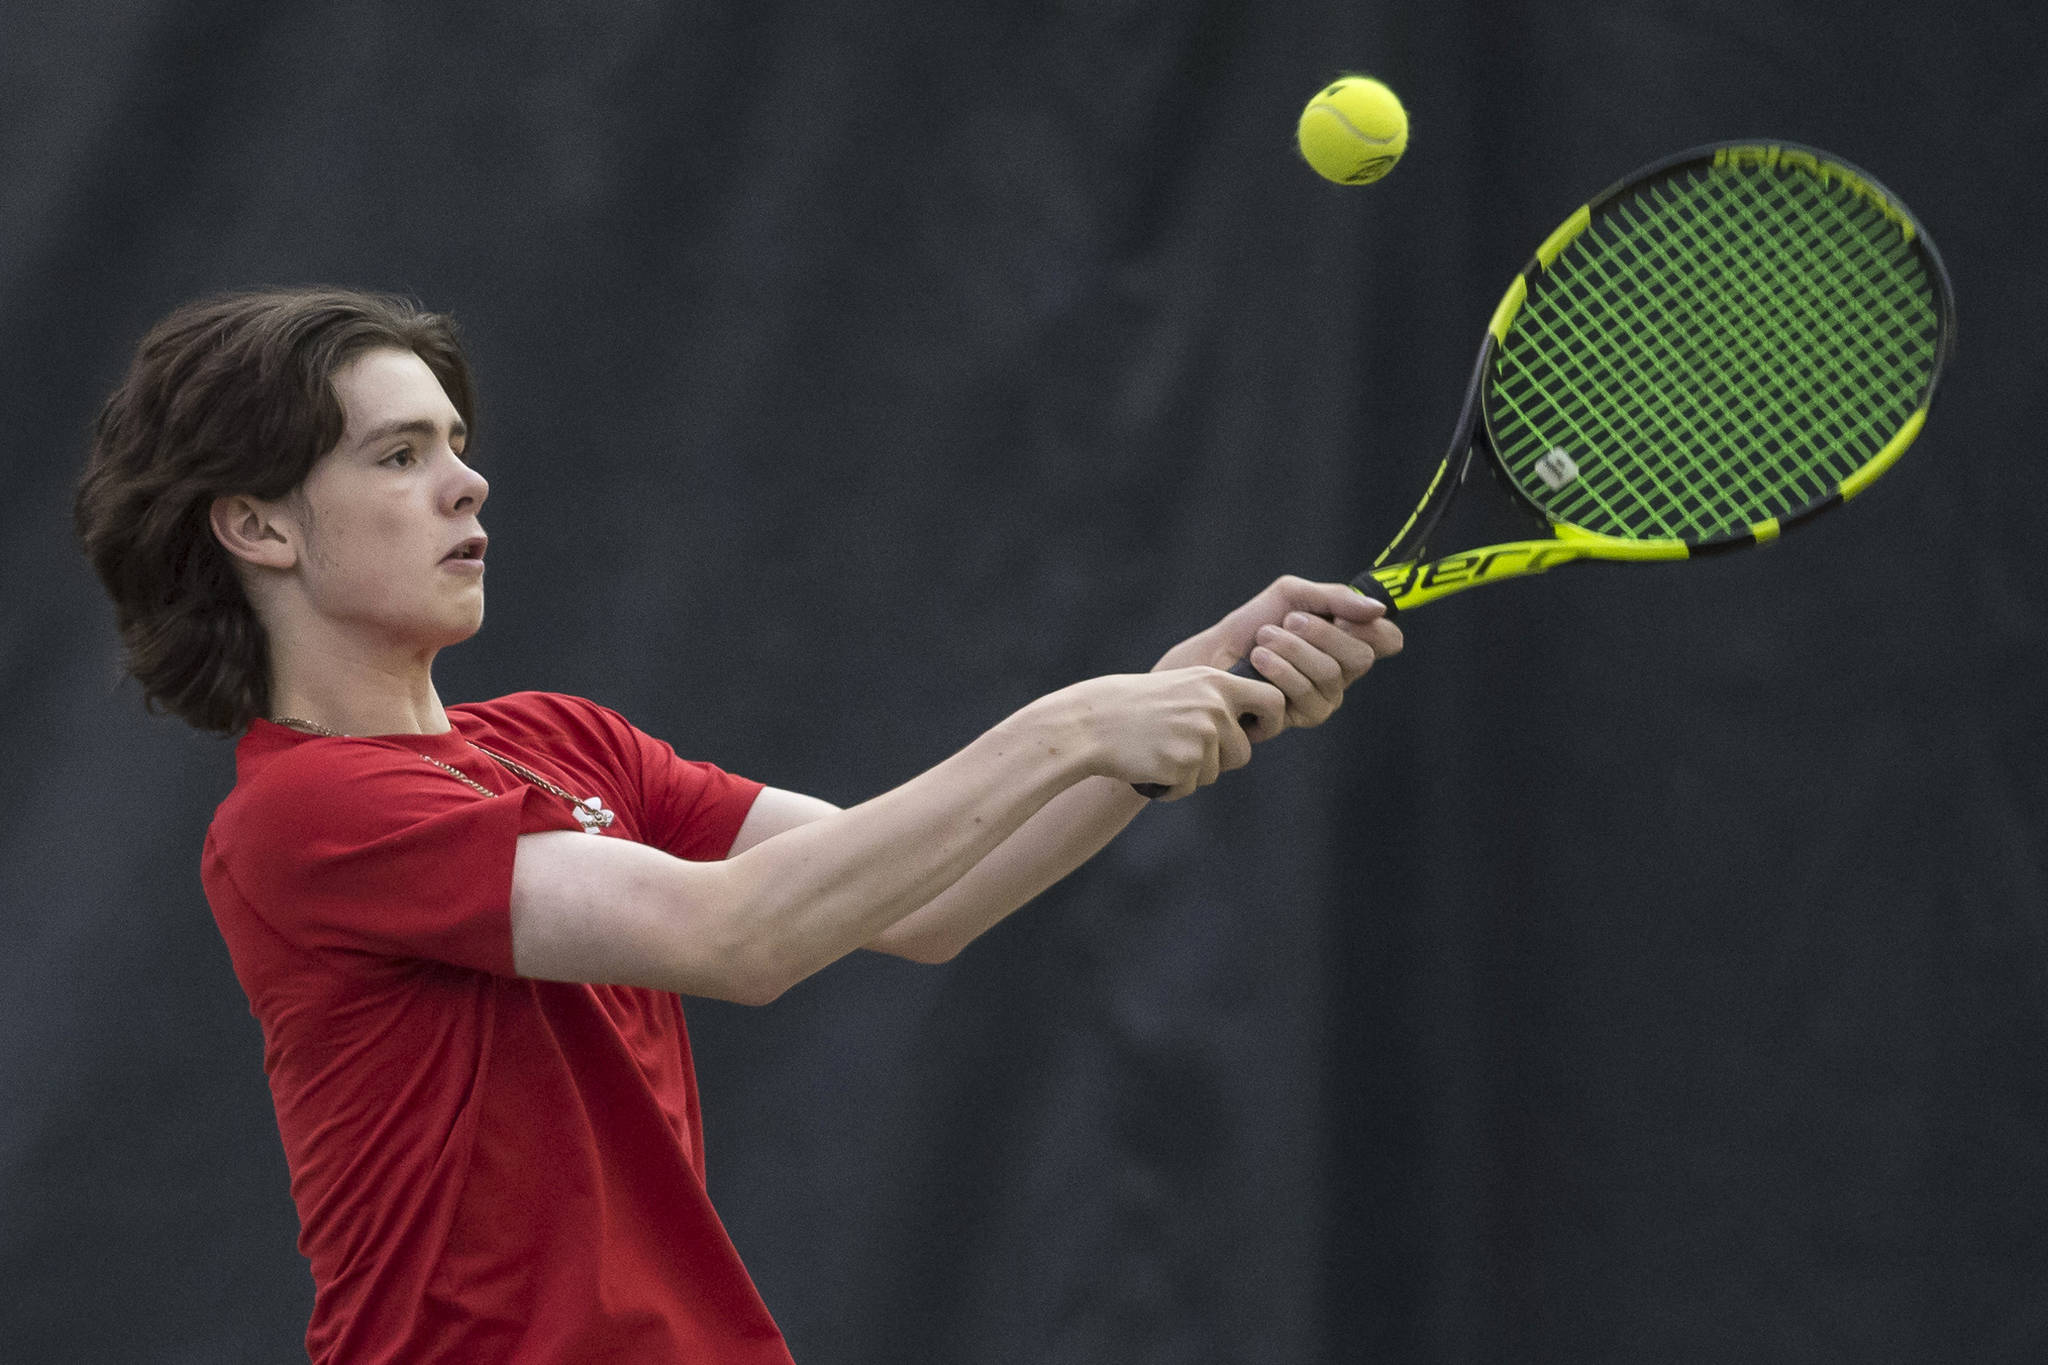 William Smoker, a junior at Juneau-Douglas High School, returns a backhand during the Regional Tennis Championships at JRC/The Alaska Club on Sunday, Sept. 23, 2018. Smoker won titles placed first in singles, doubles and mixed doubles. (Michael Penn | Juneau Empire)